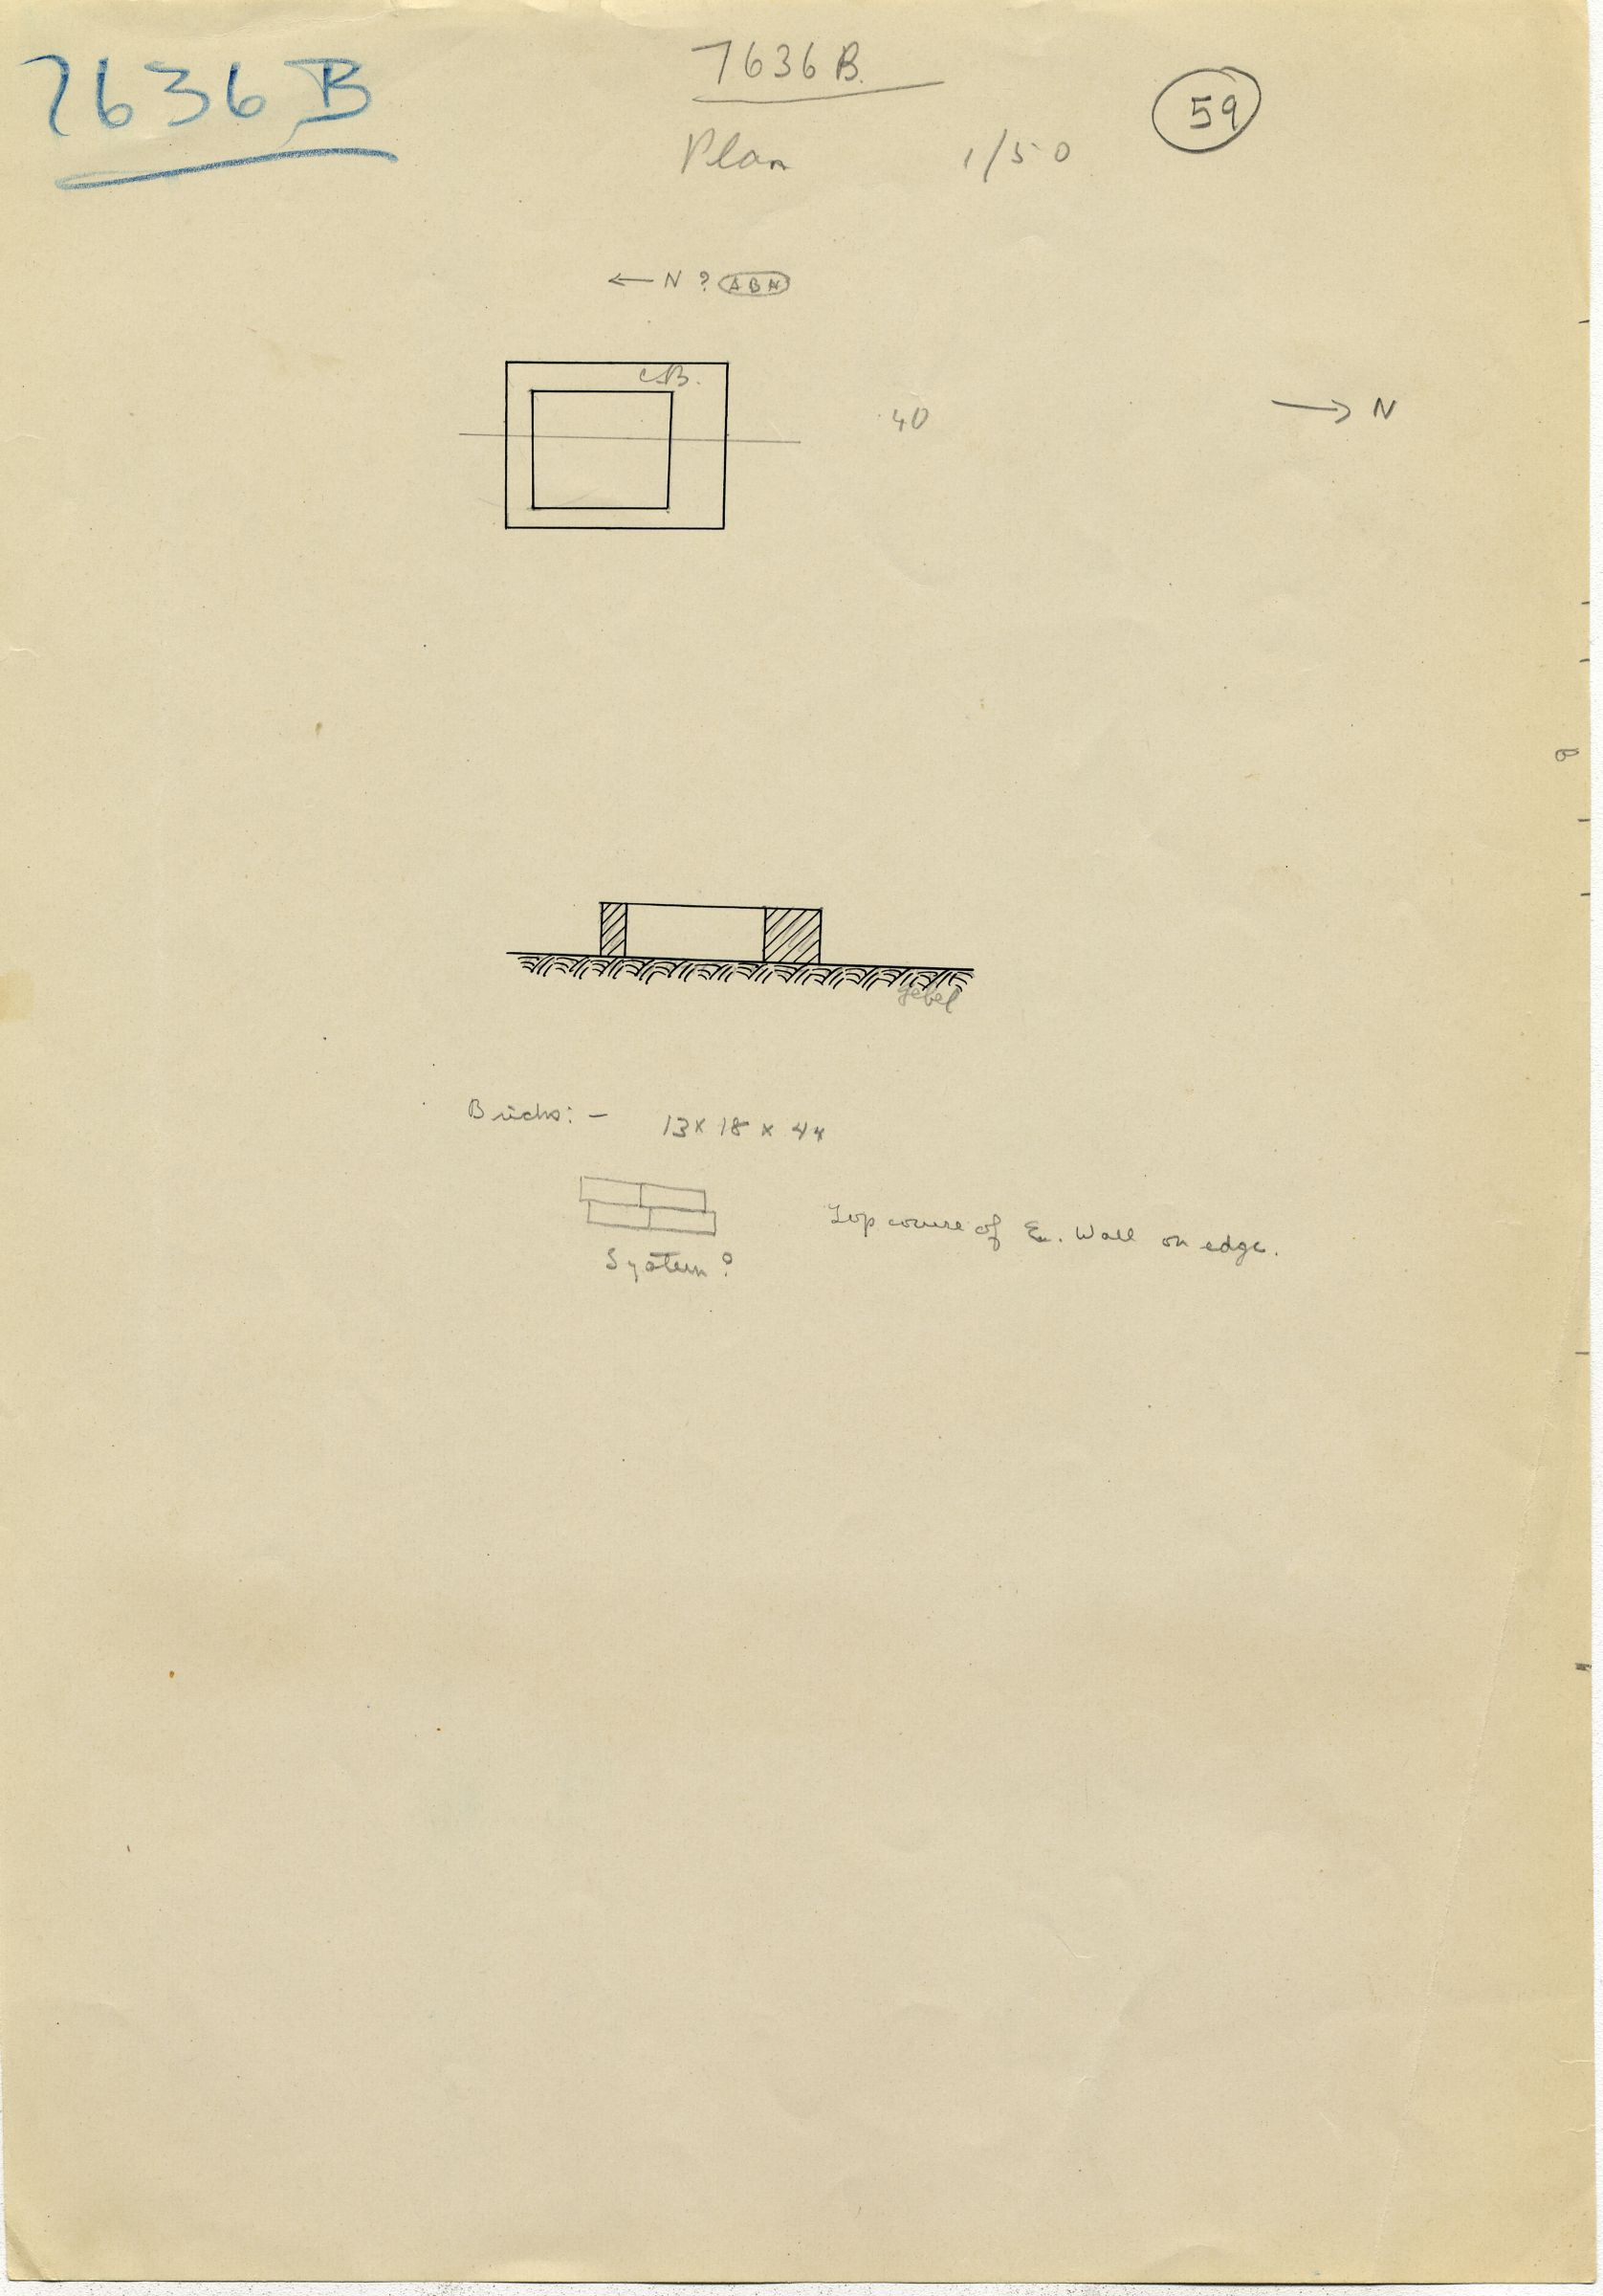 Maps and plans: G 7636, Shaft B